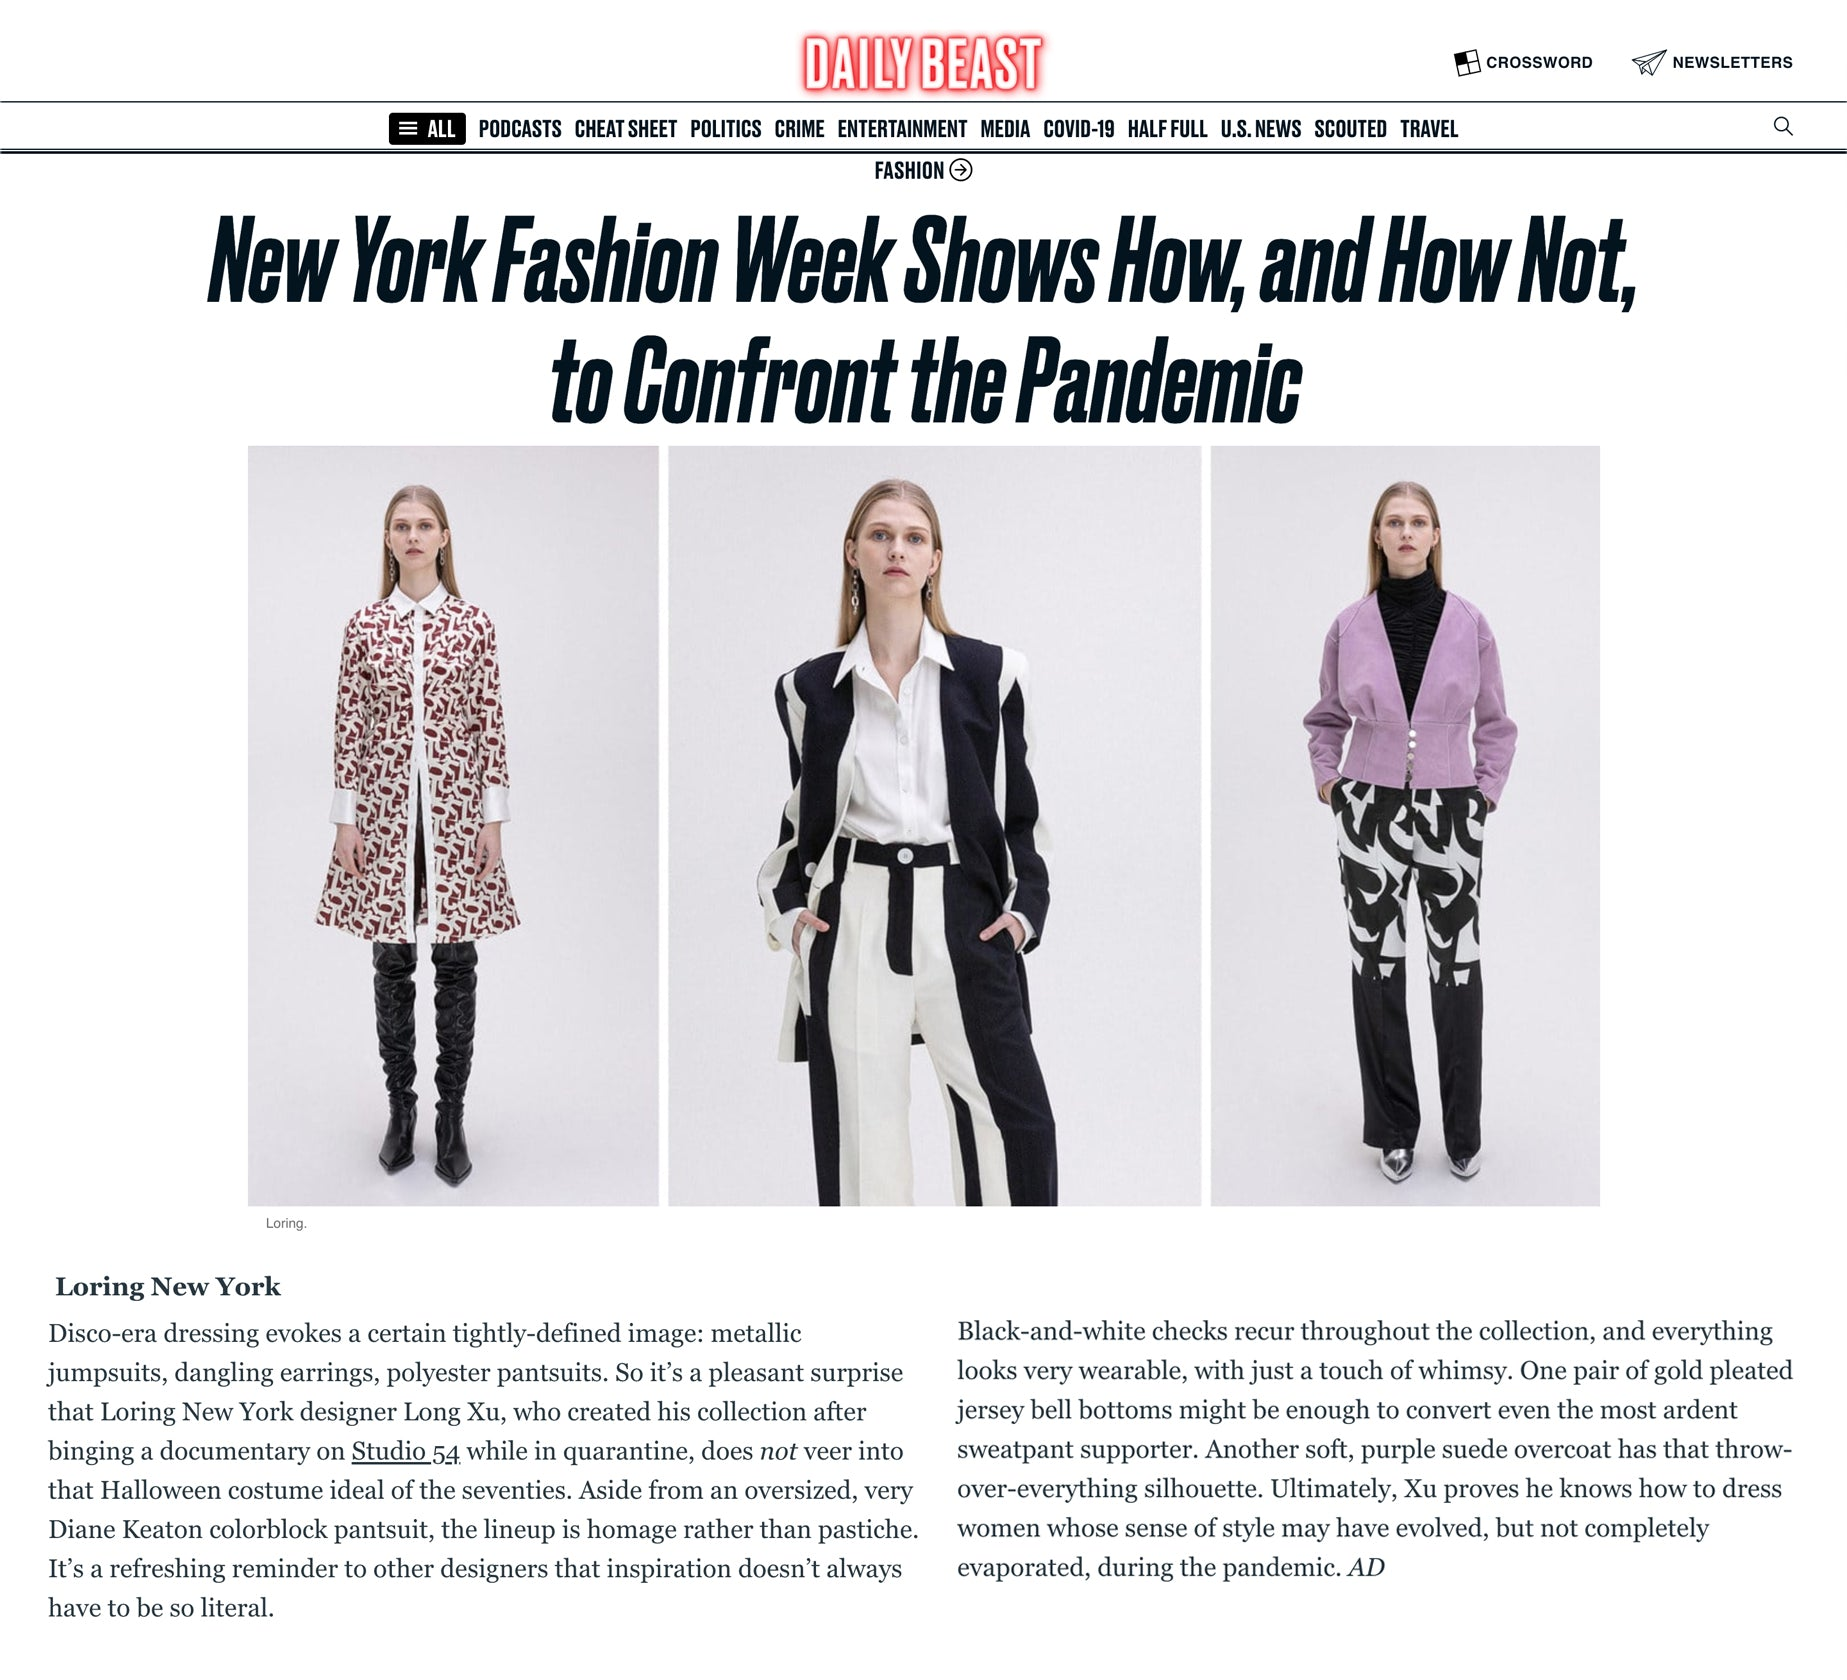 Daily Beast - LORING NEW YORK - New York Fashion Week Shows How, and How Not, to Confront the Pandemic